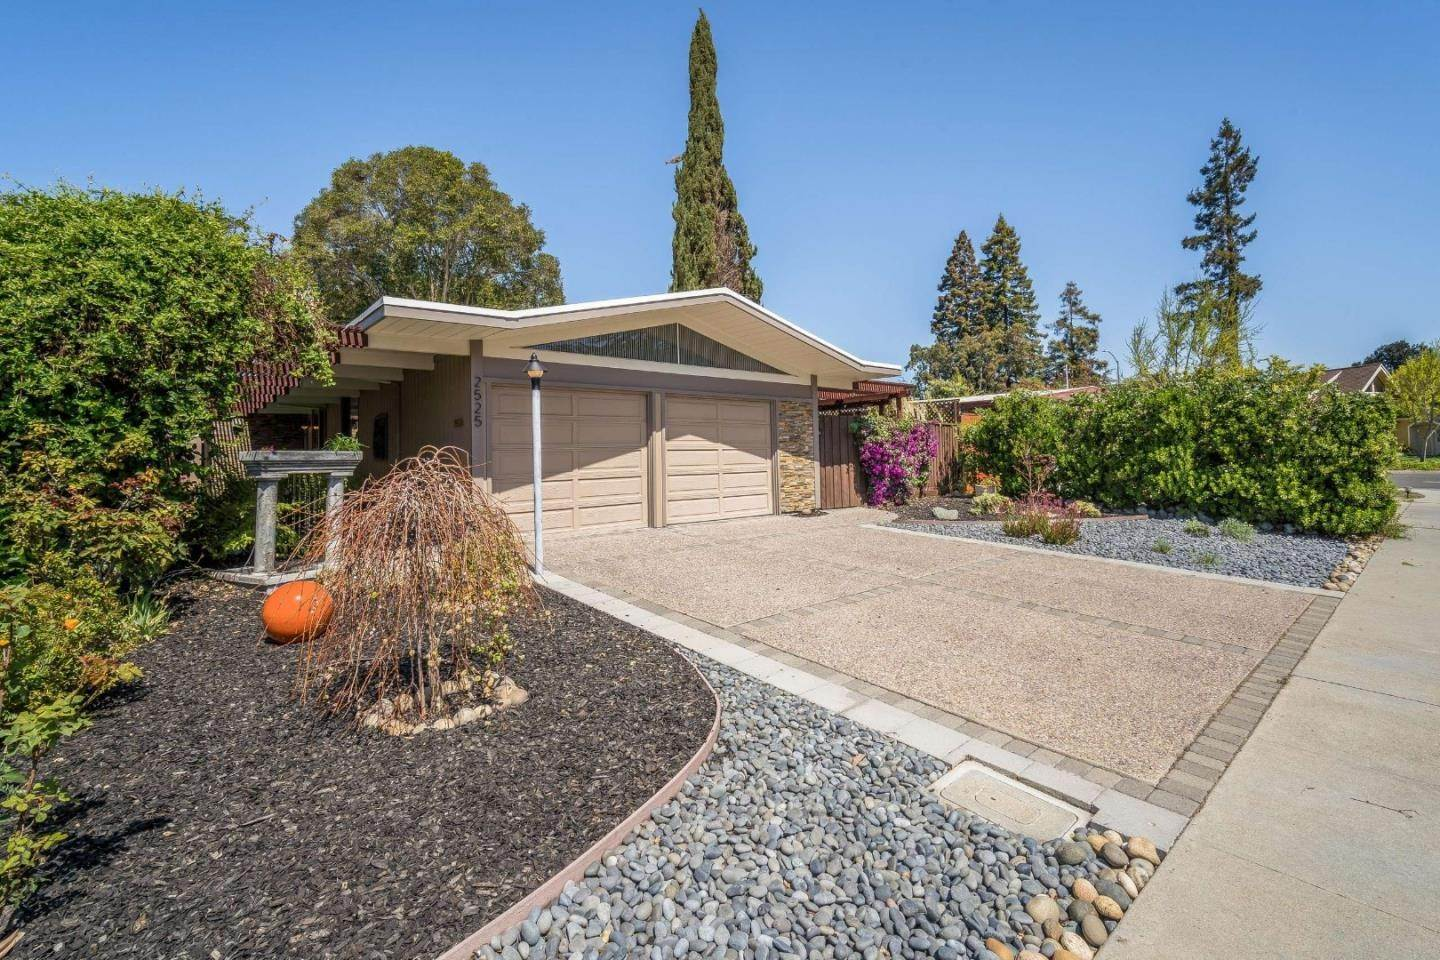 Single Family Homes for Sale at 2525 Nedson Court Mountain View, California 94043 United States